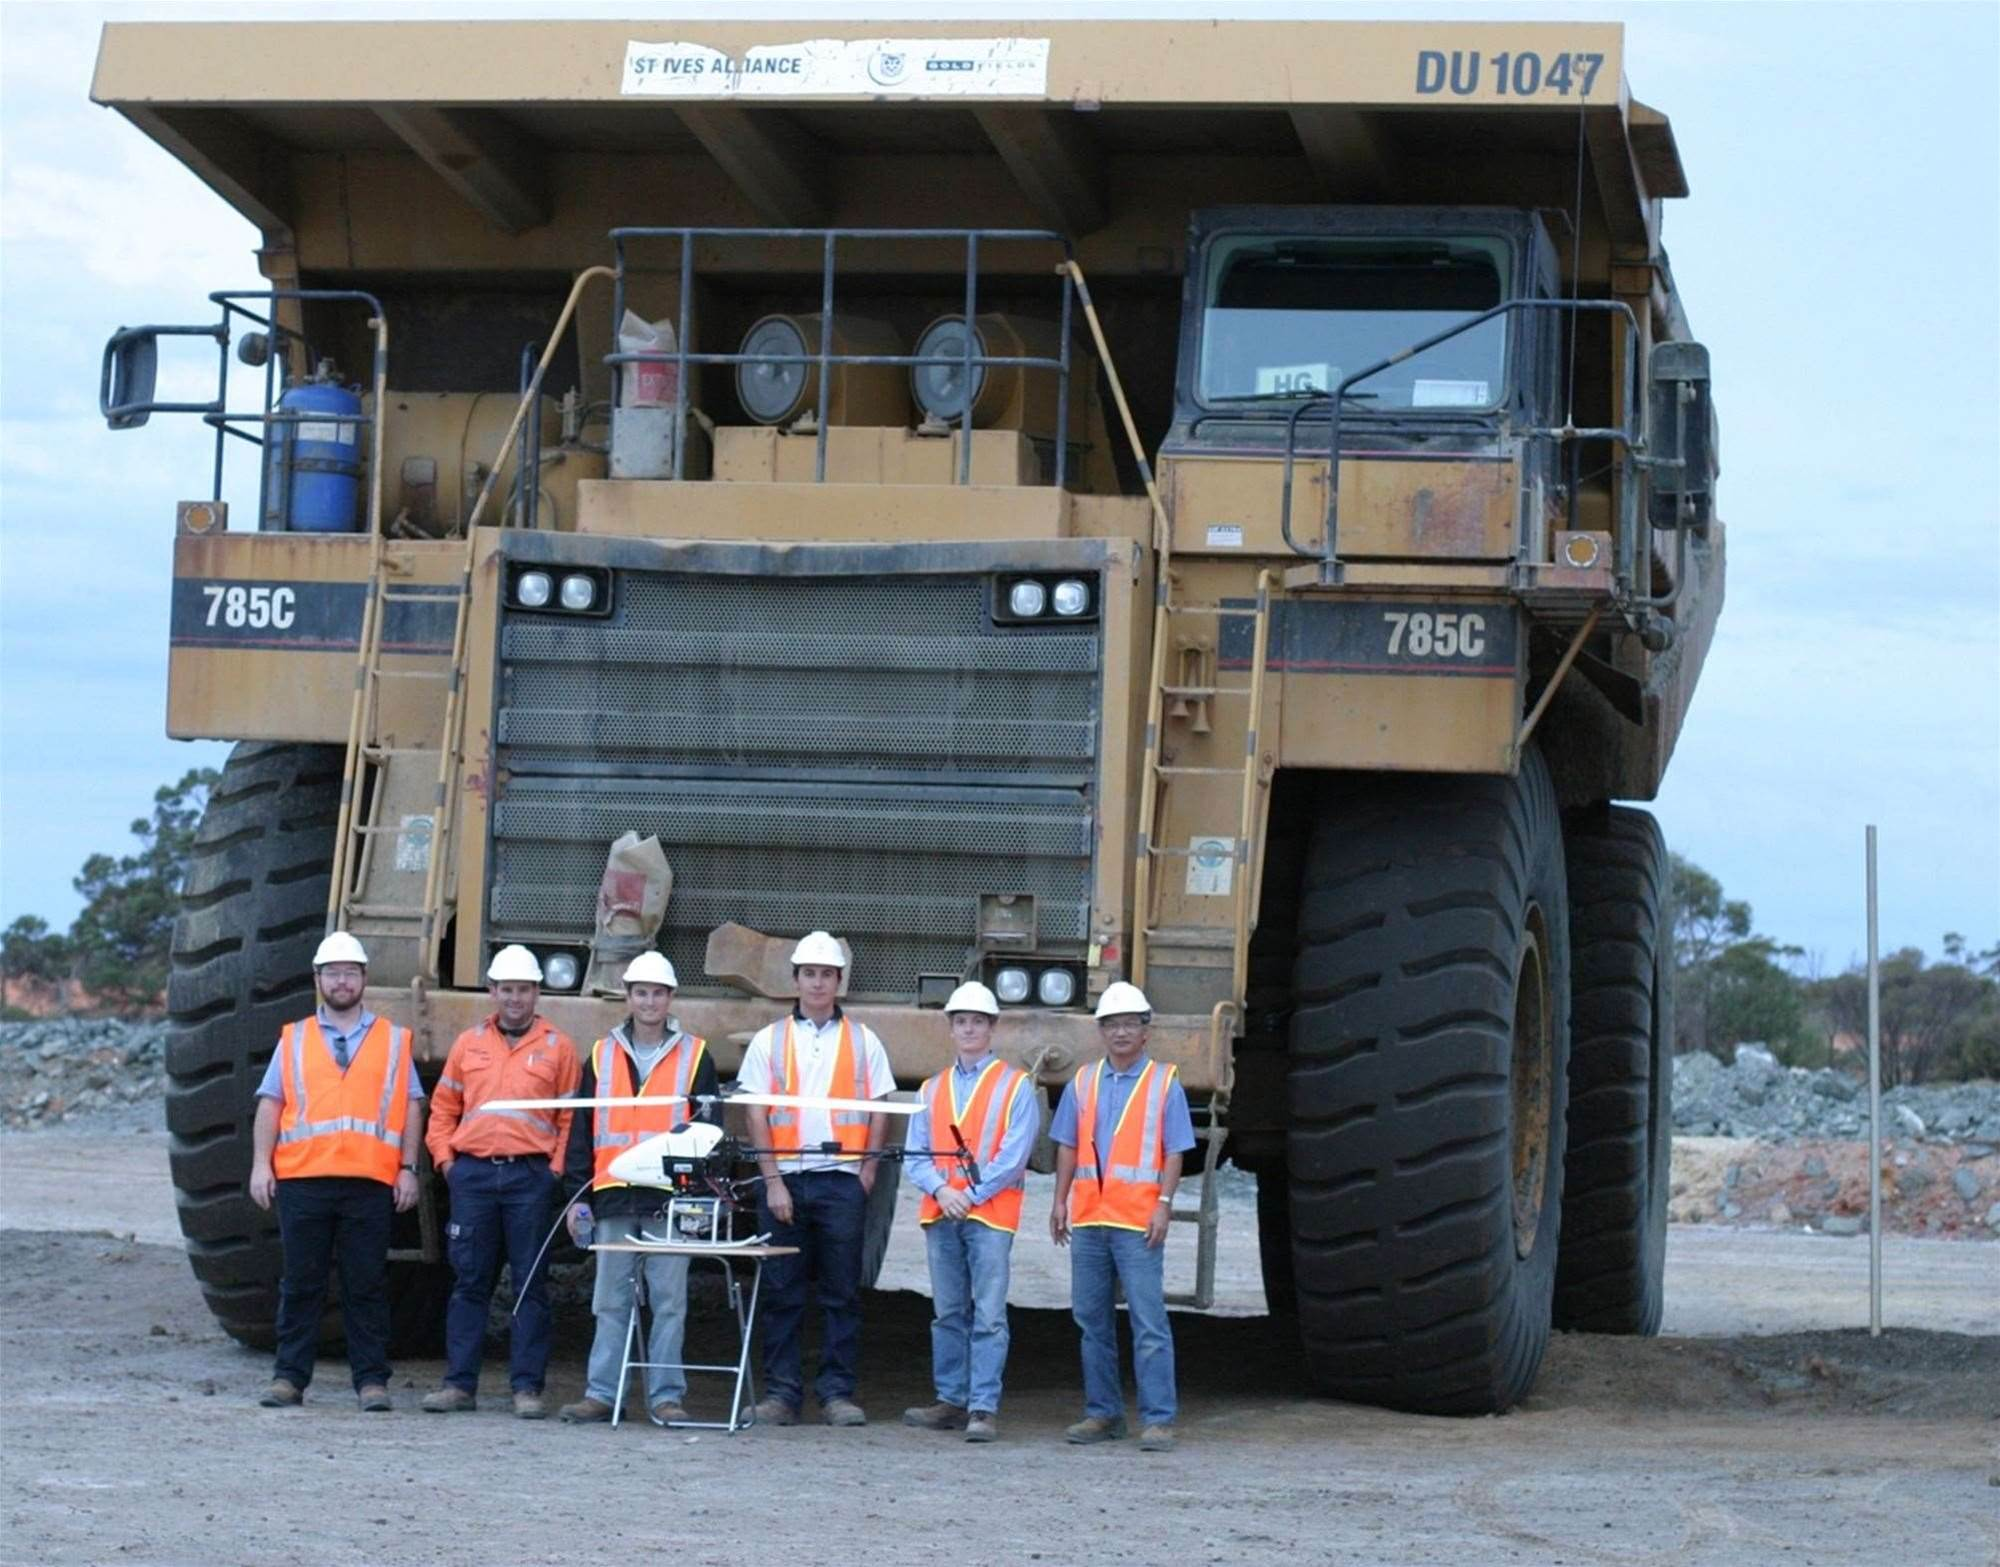 Mining drones bridge workplace safety concerns